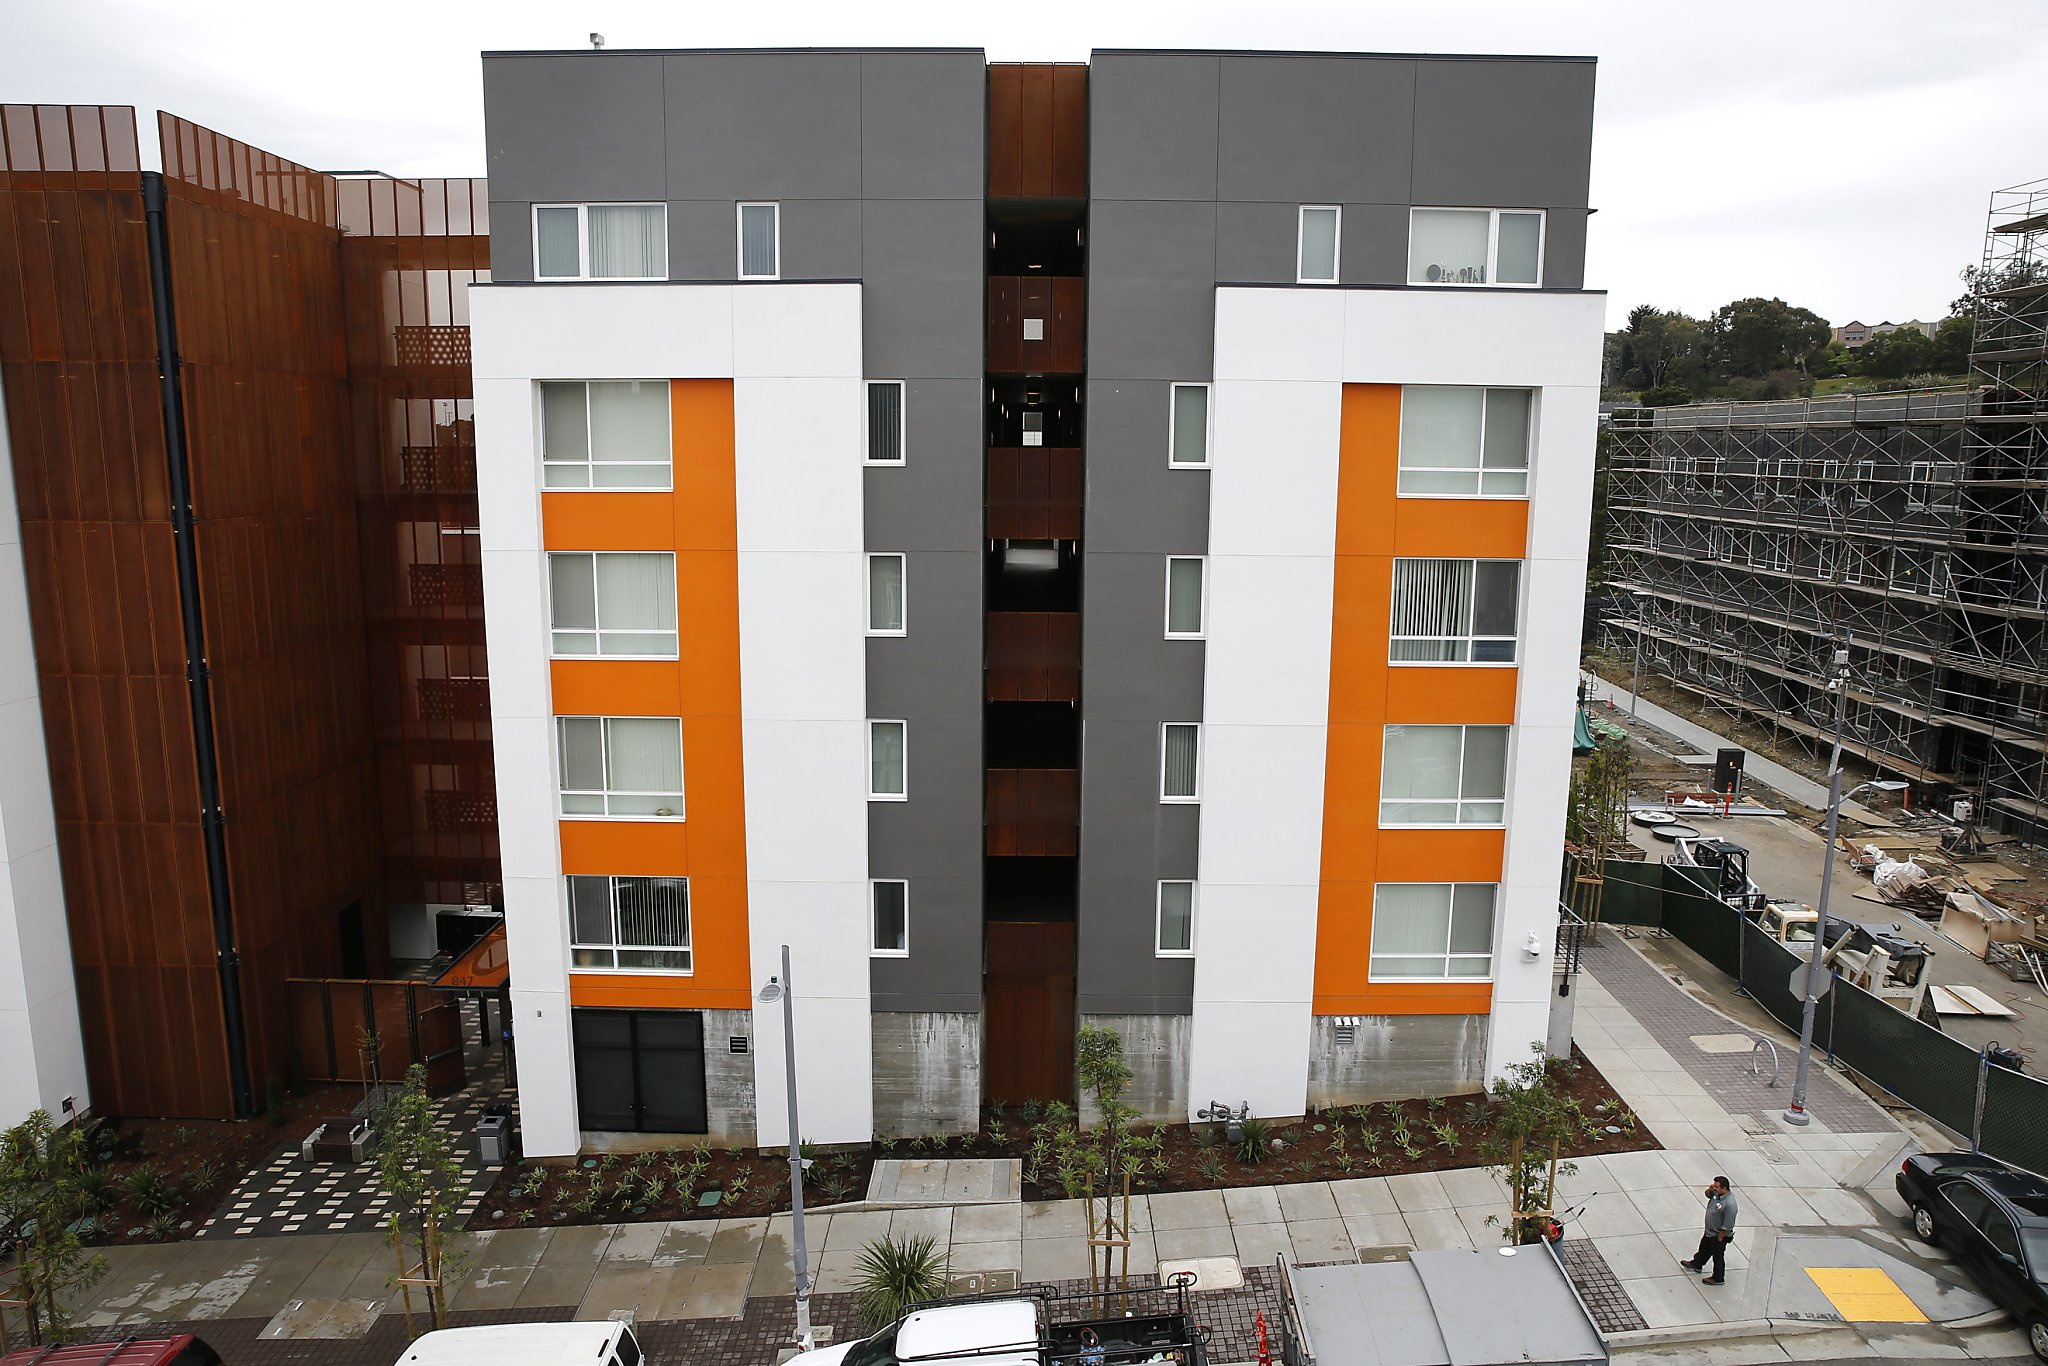 House hunters san francisco bay - The New Hunters Point Public Housing Near Middle Point Road On Tuesday April 11 Audit Shows Sf Housing